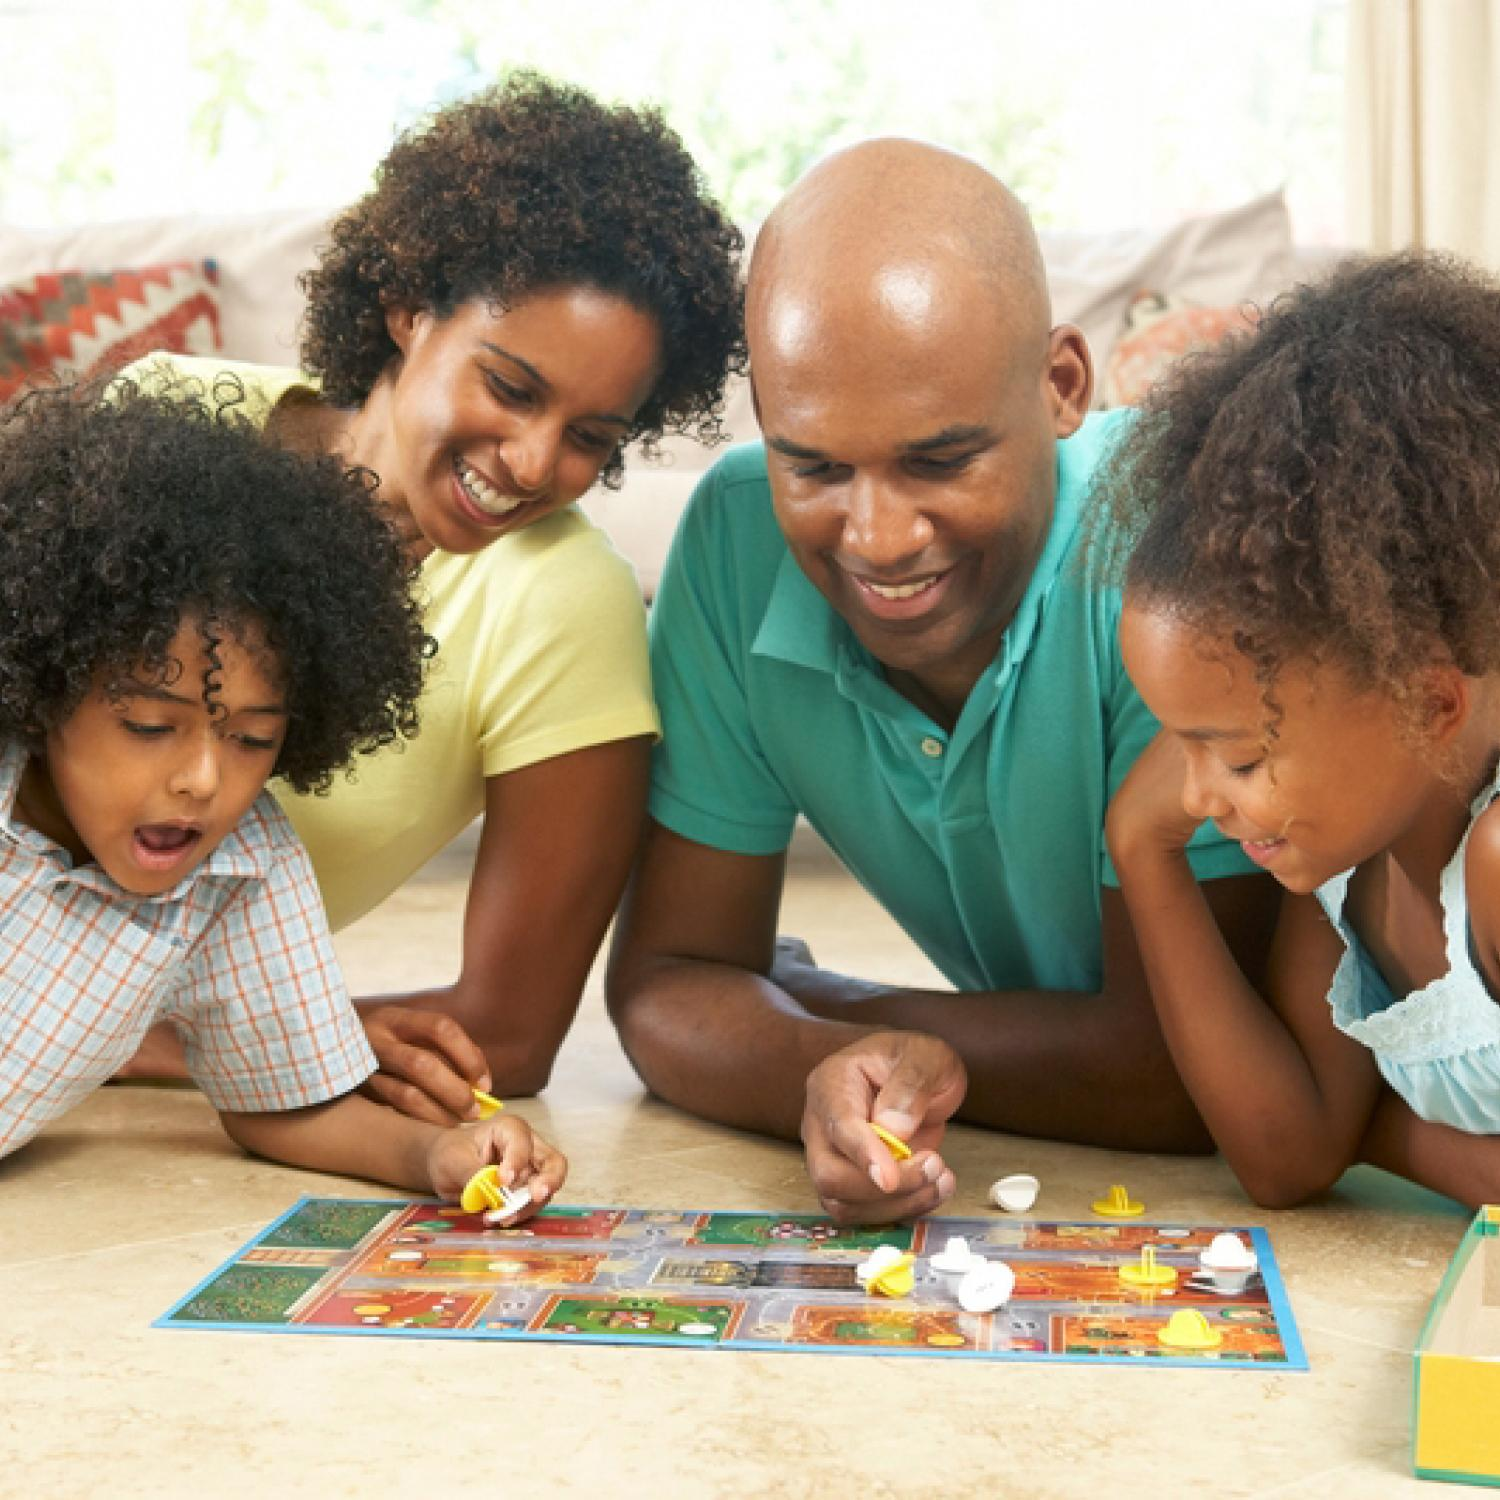 Educational Board Games Kids And Families Parenting